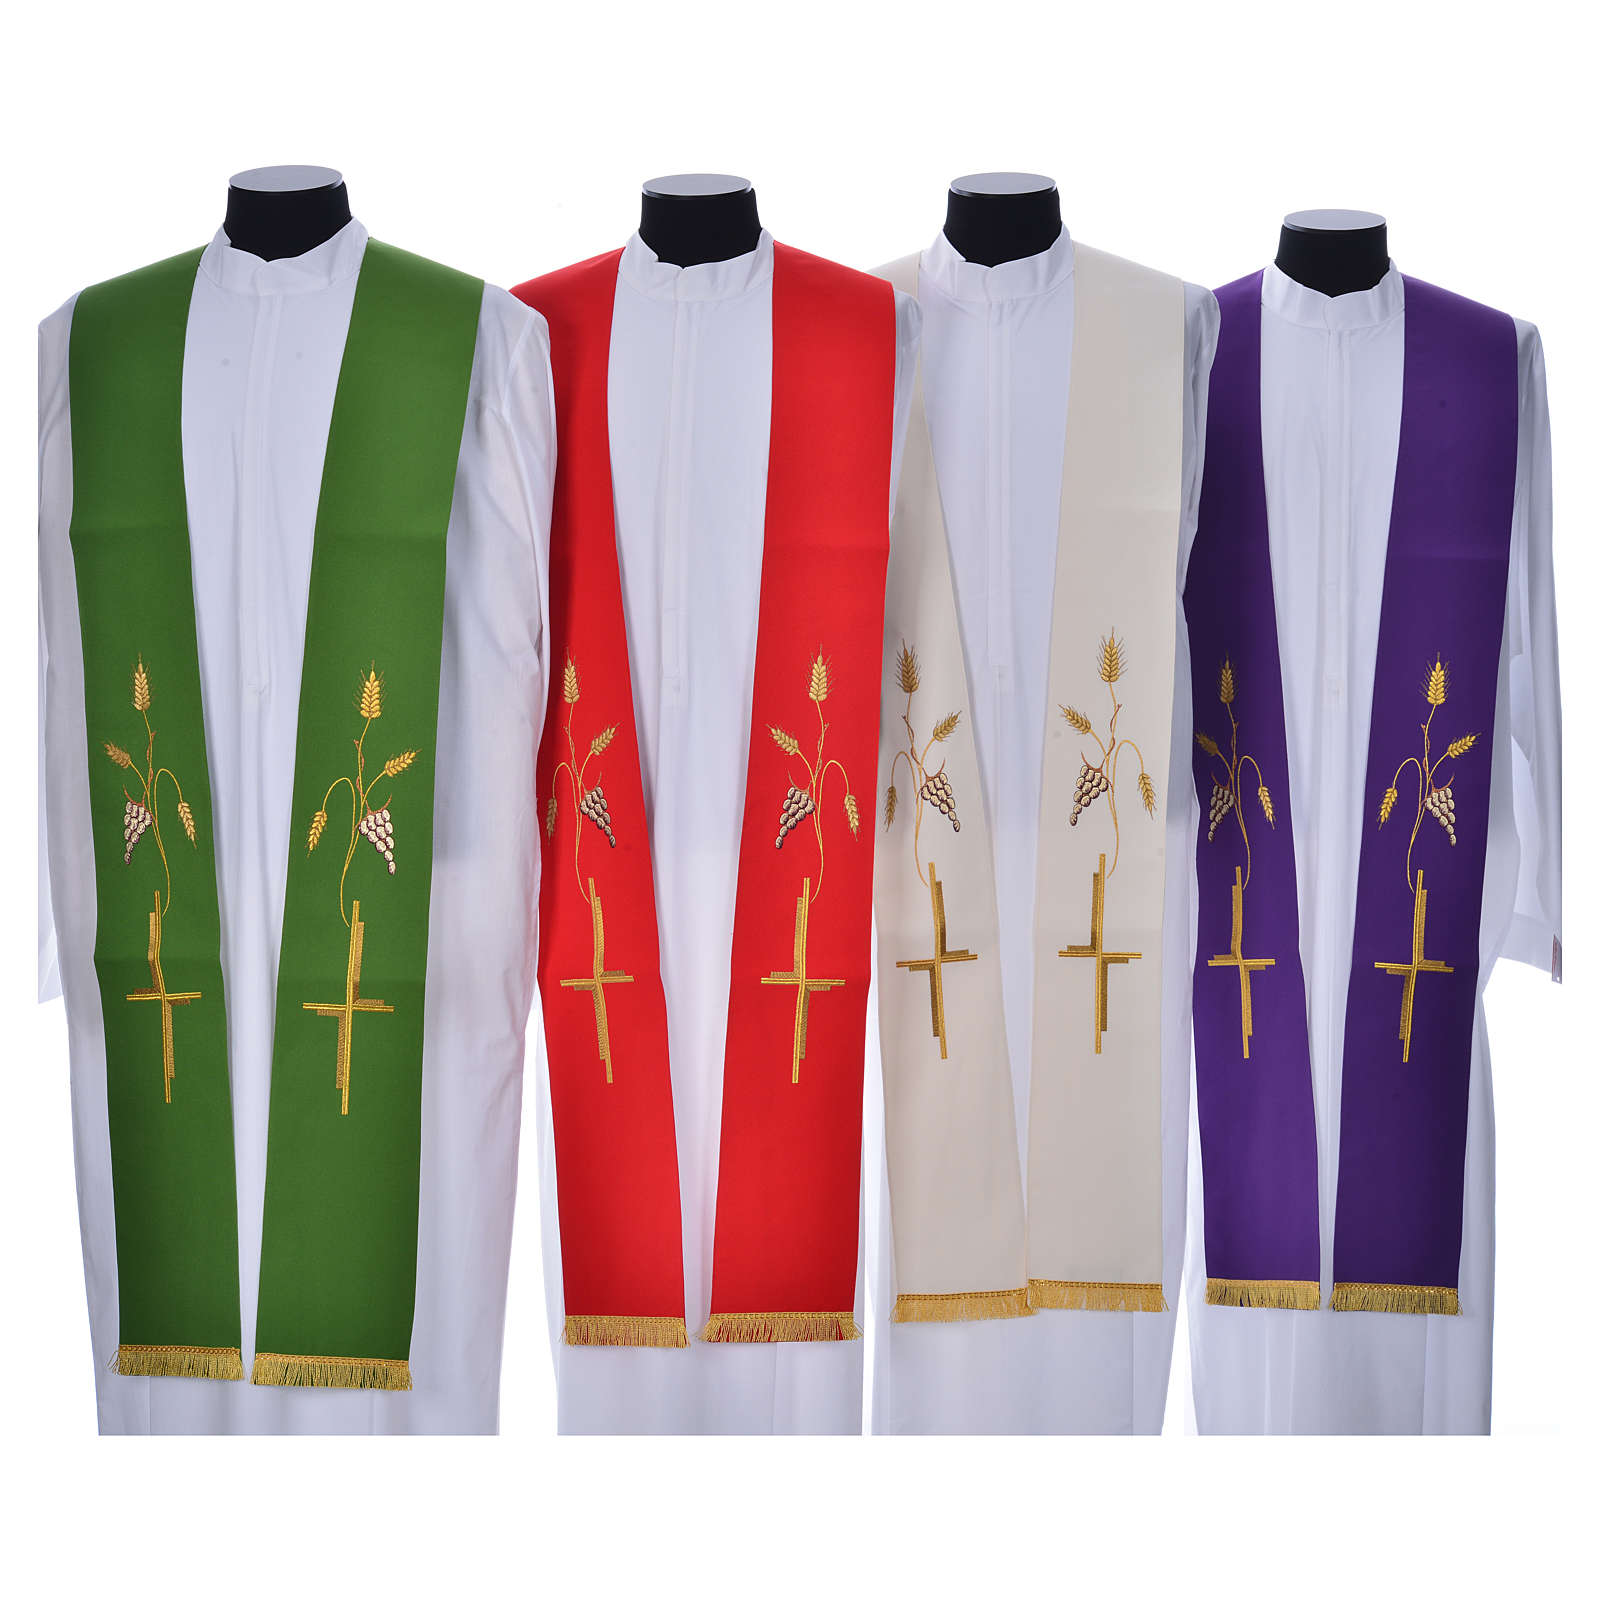 Priest Stole in polyester with cross embroidery 4